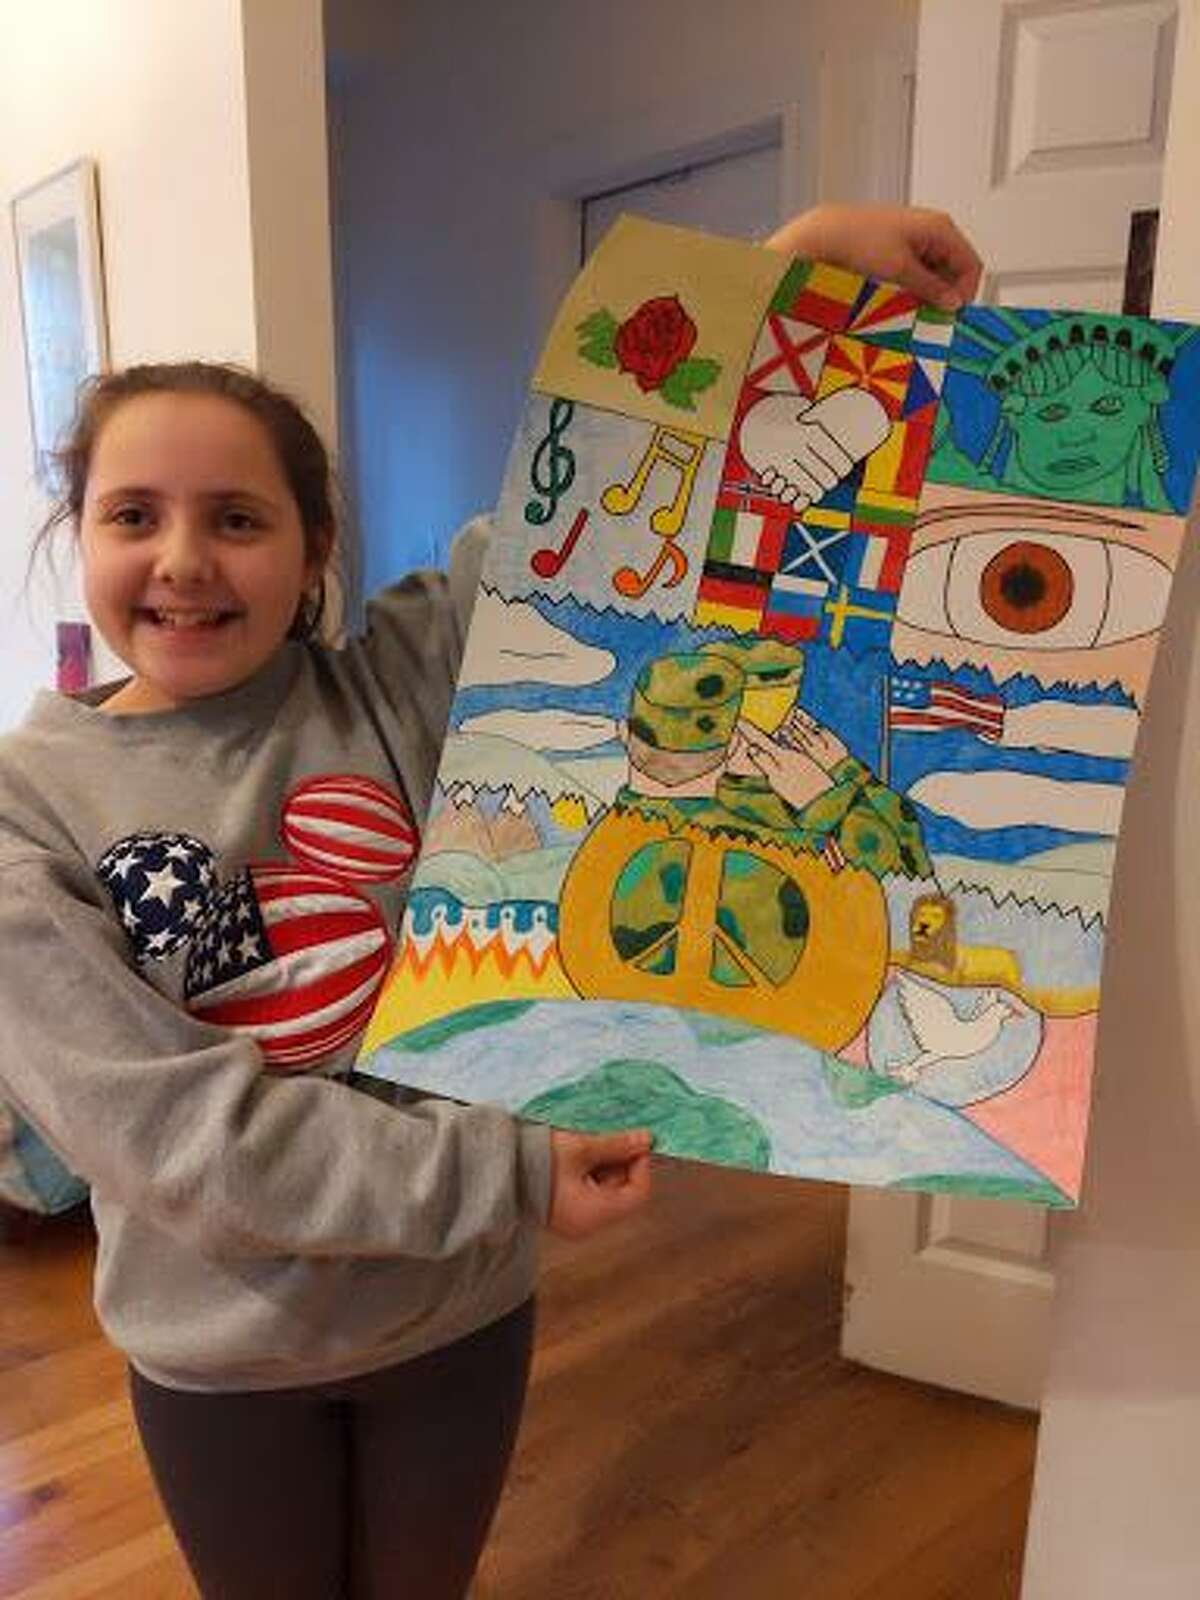 Chloe Pernaselci, a 7th grade student at Seymour Middle School, has taken the first step to becoming an internationally recognized artist by winning a local competition sponsored by the Seymour Lions Club.